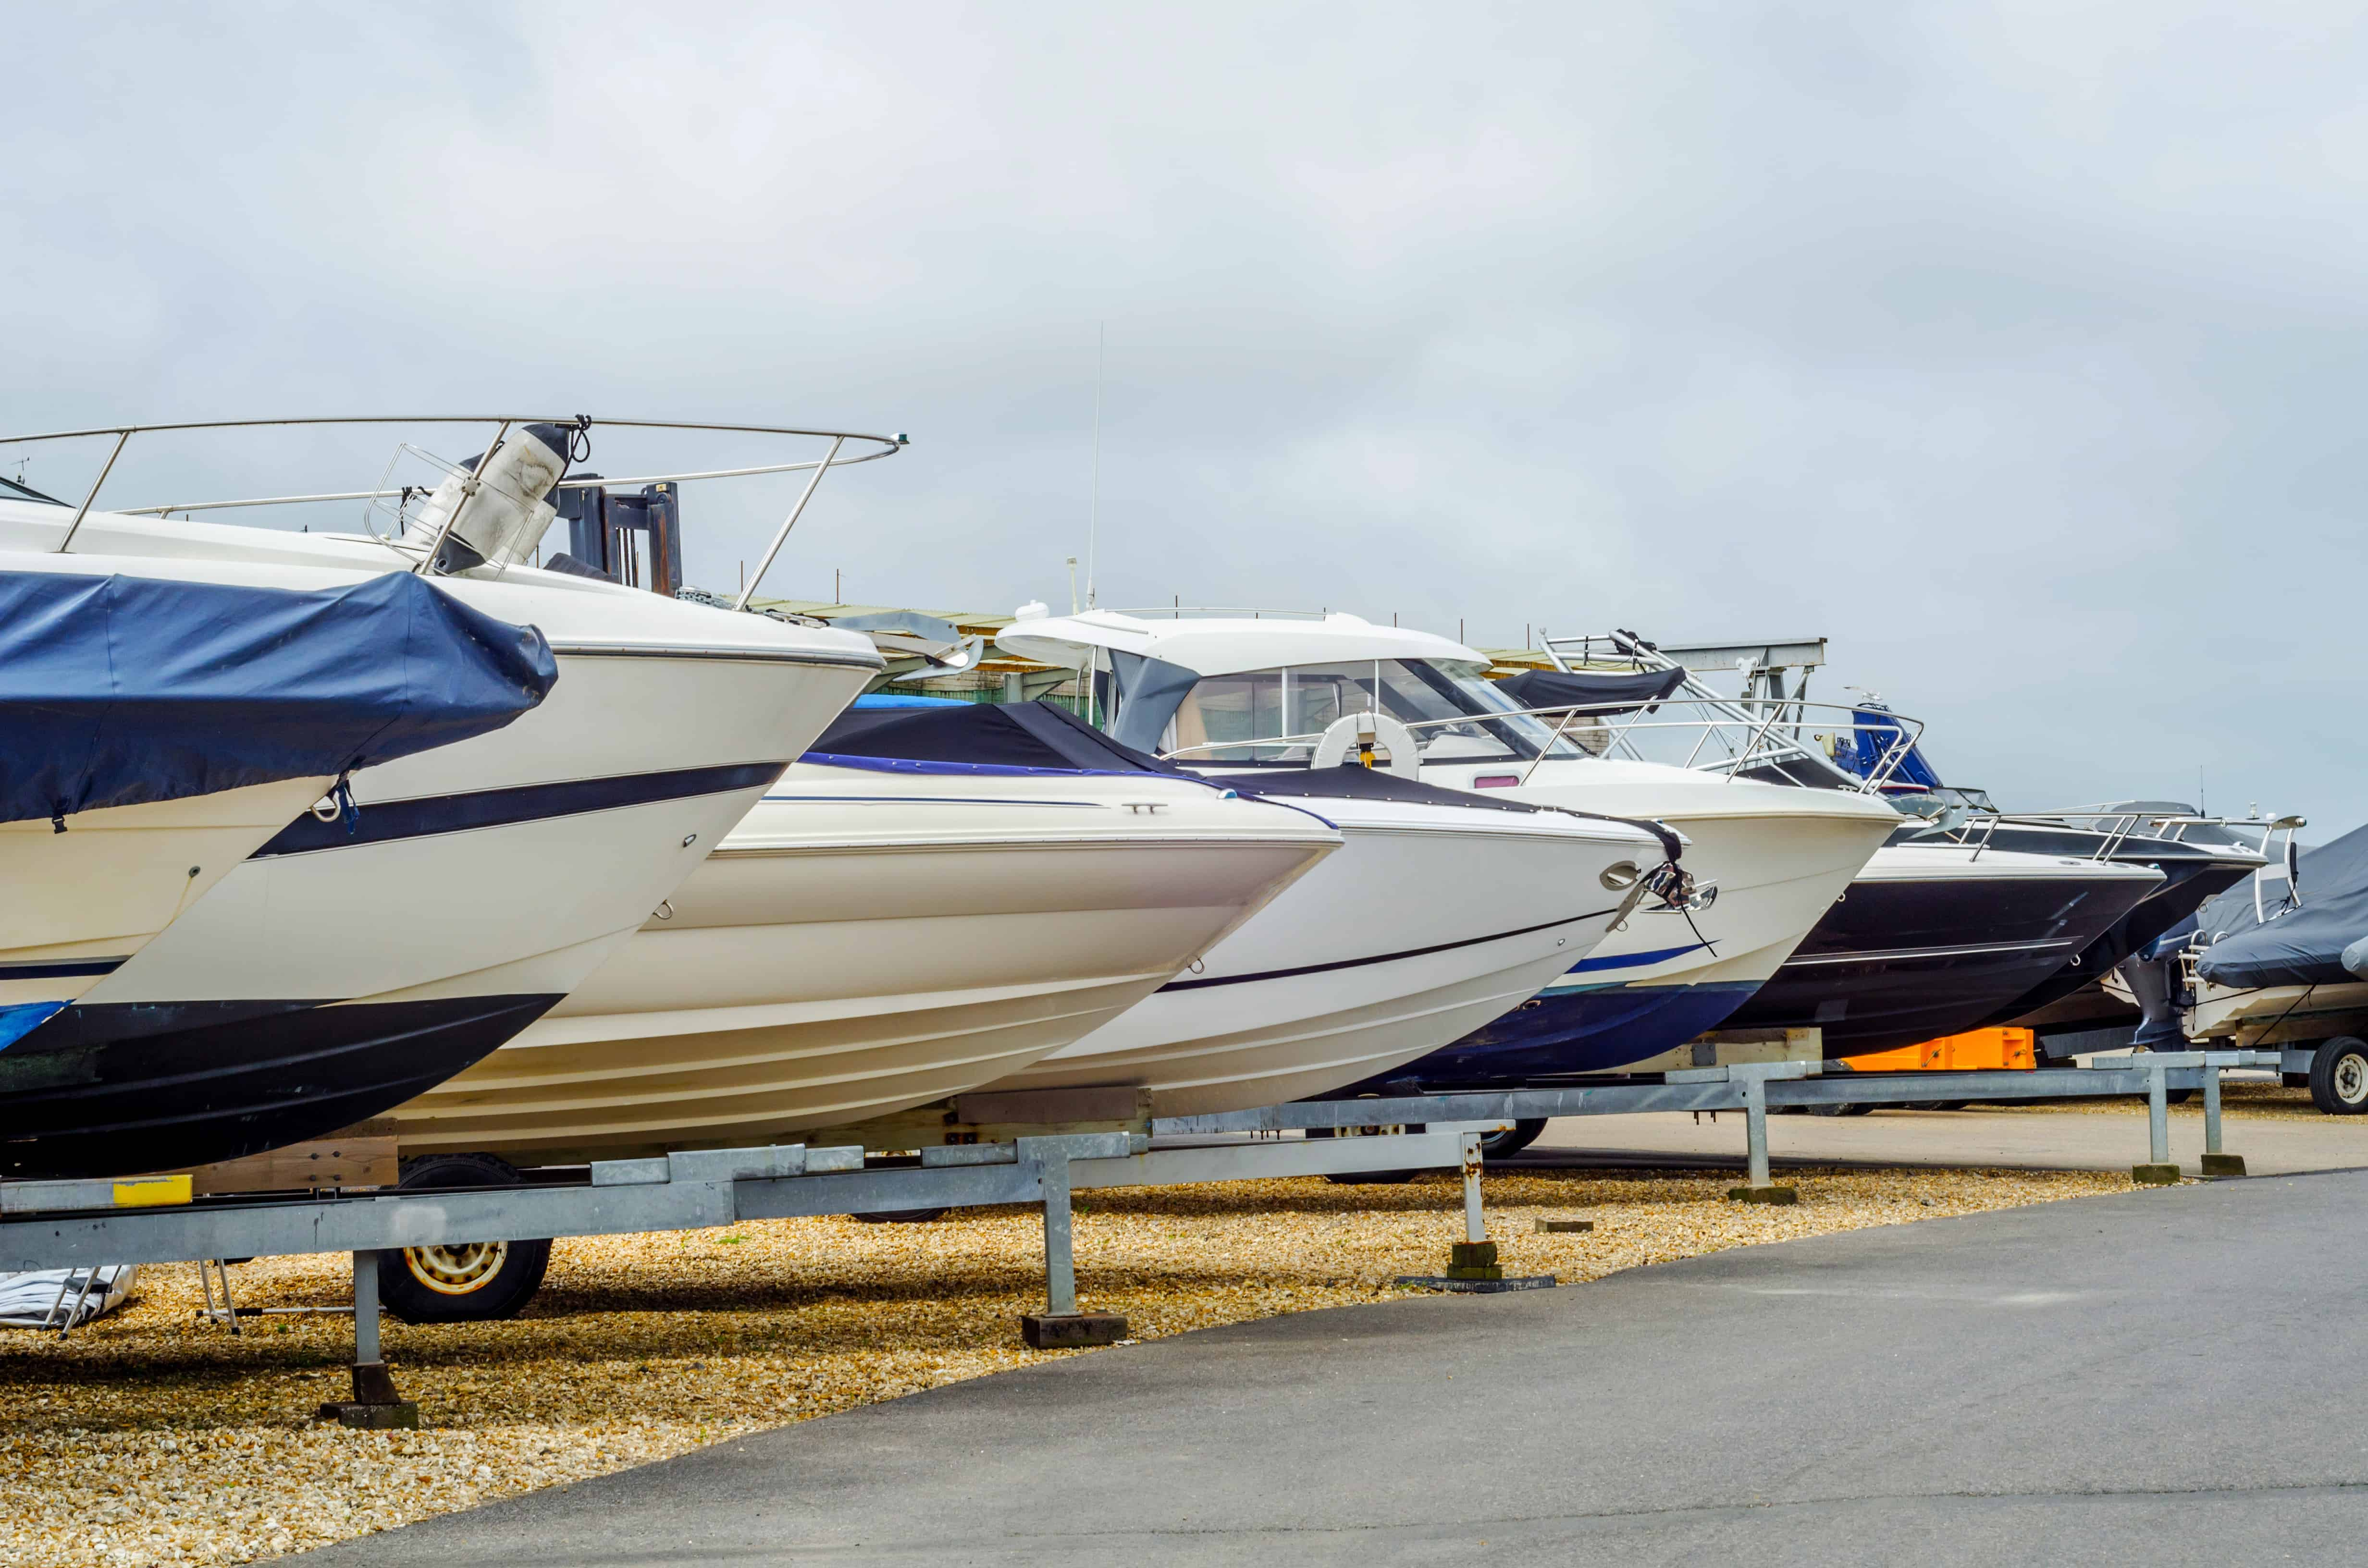 What is your liability for boat storage?